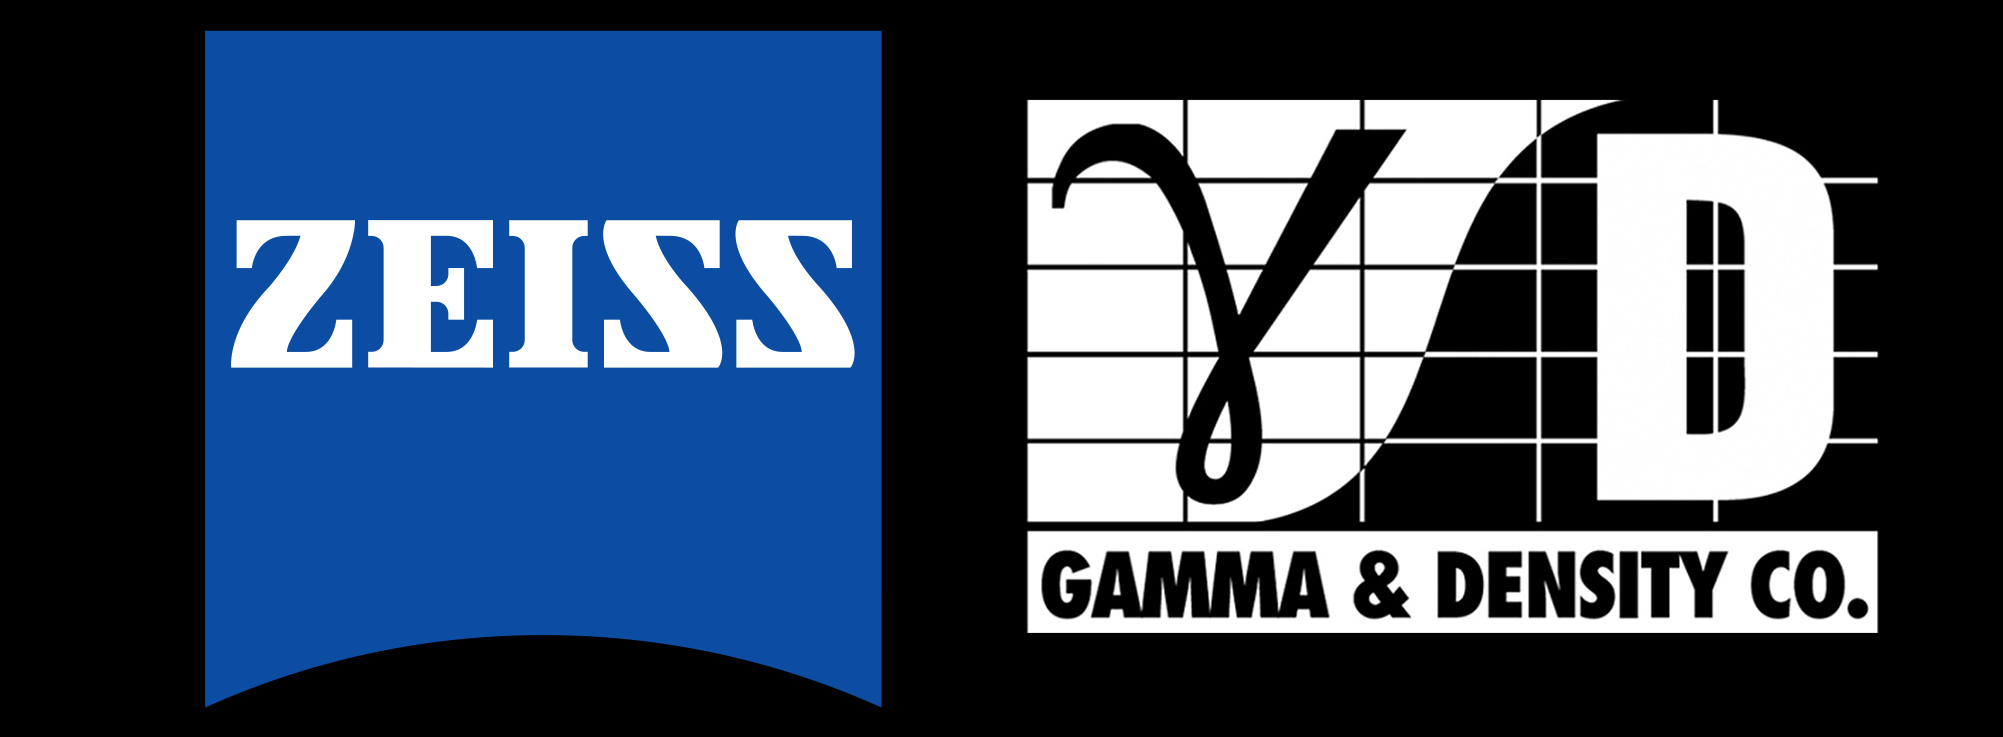 G.C.I. Sponsor Logos: Zeiss Lenses and Gamma & Density Company